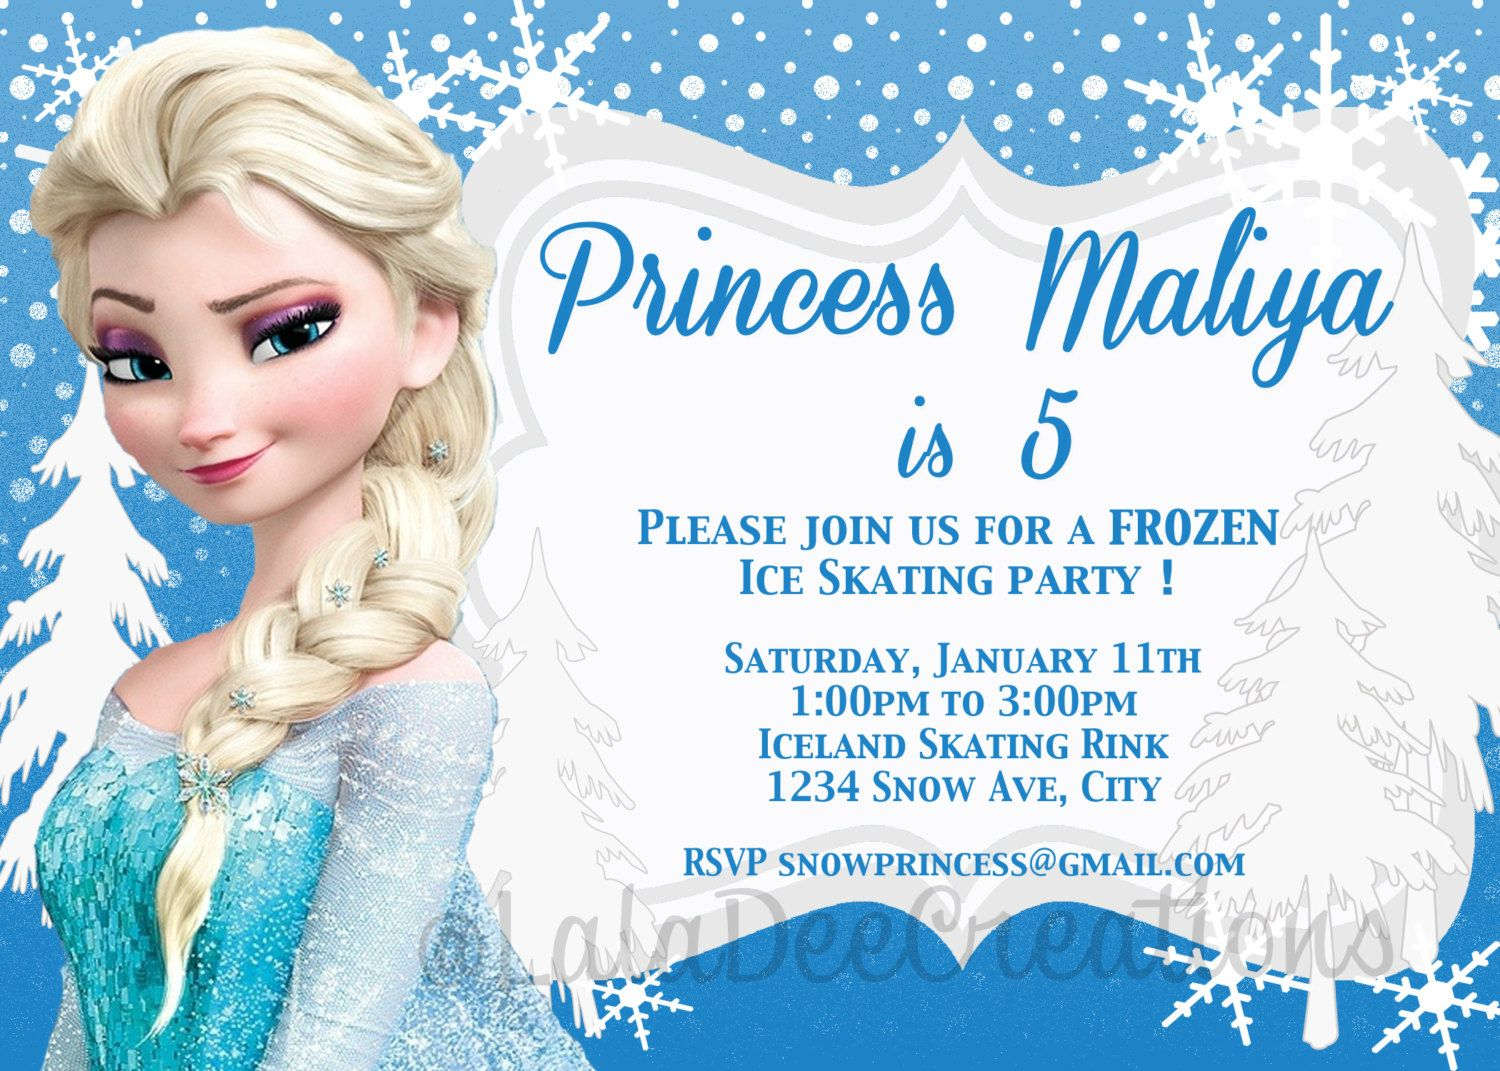 Free Frozen Editable Birthday Invitations Frozen Birthday Invitations Frozen Invitations Frozen Birthday Party Invites